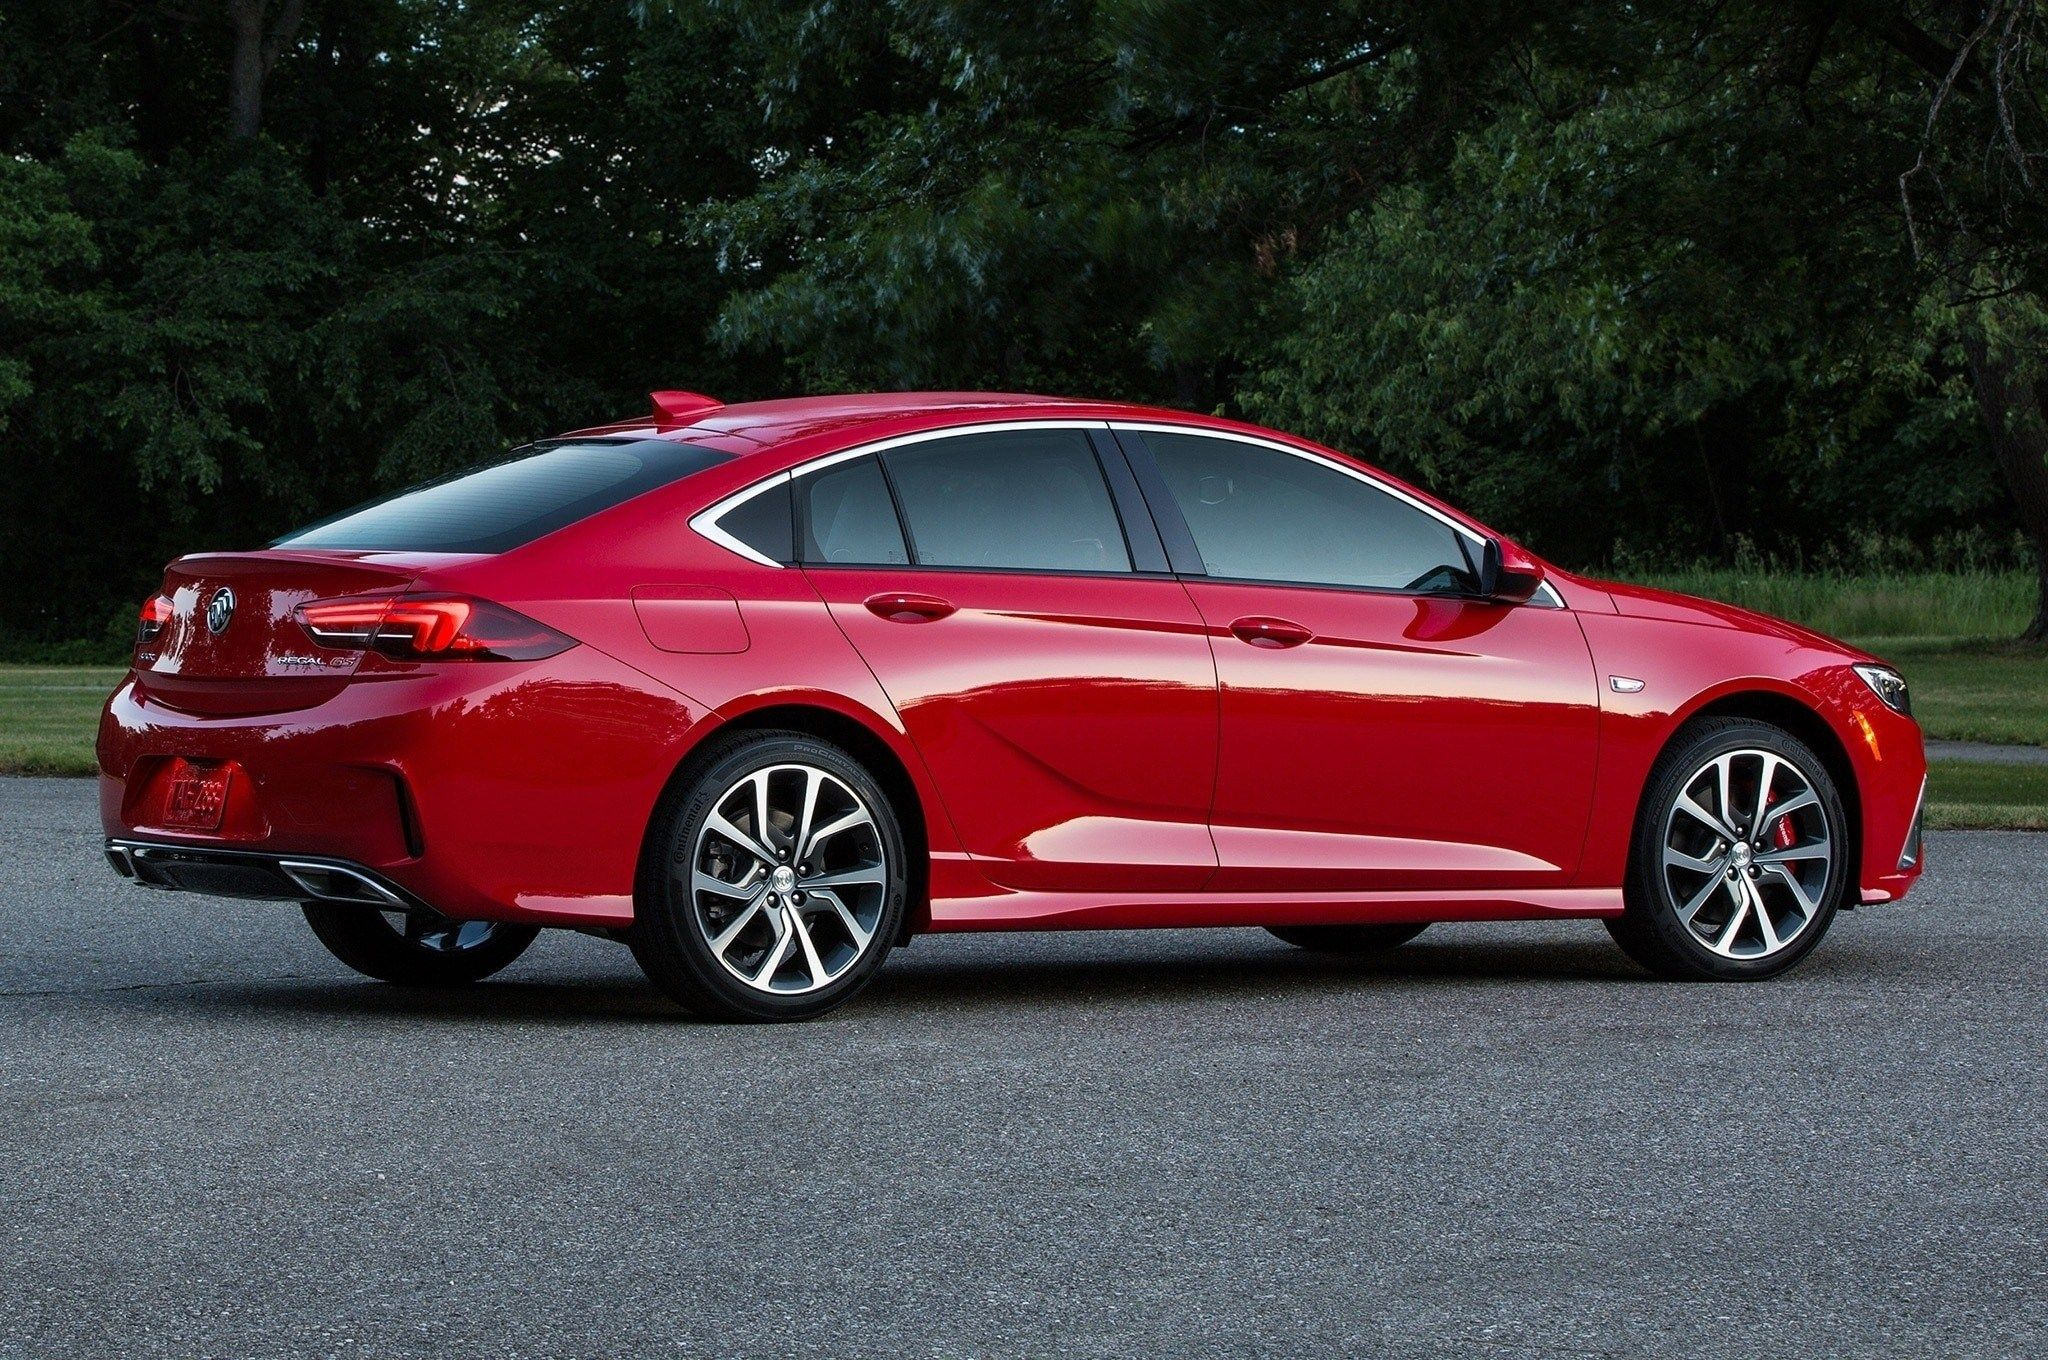 New 2019 Buick Regal Gs Coupe Price And Release Date Cars New